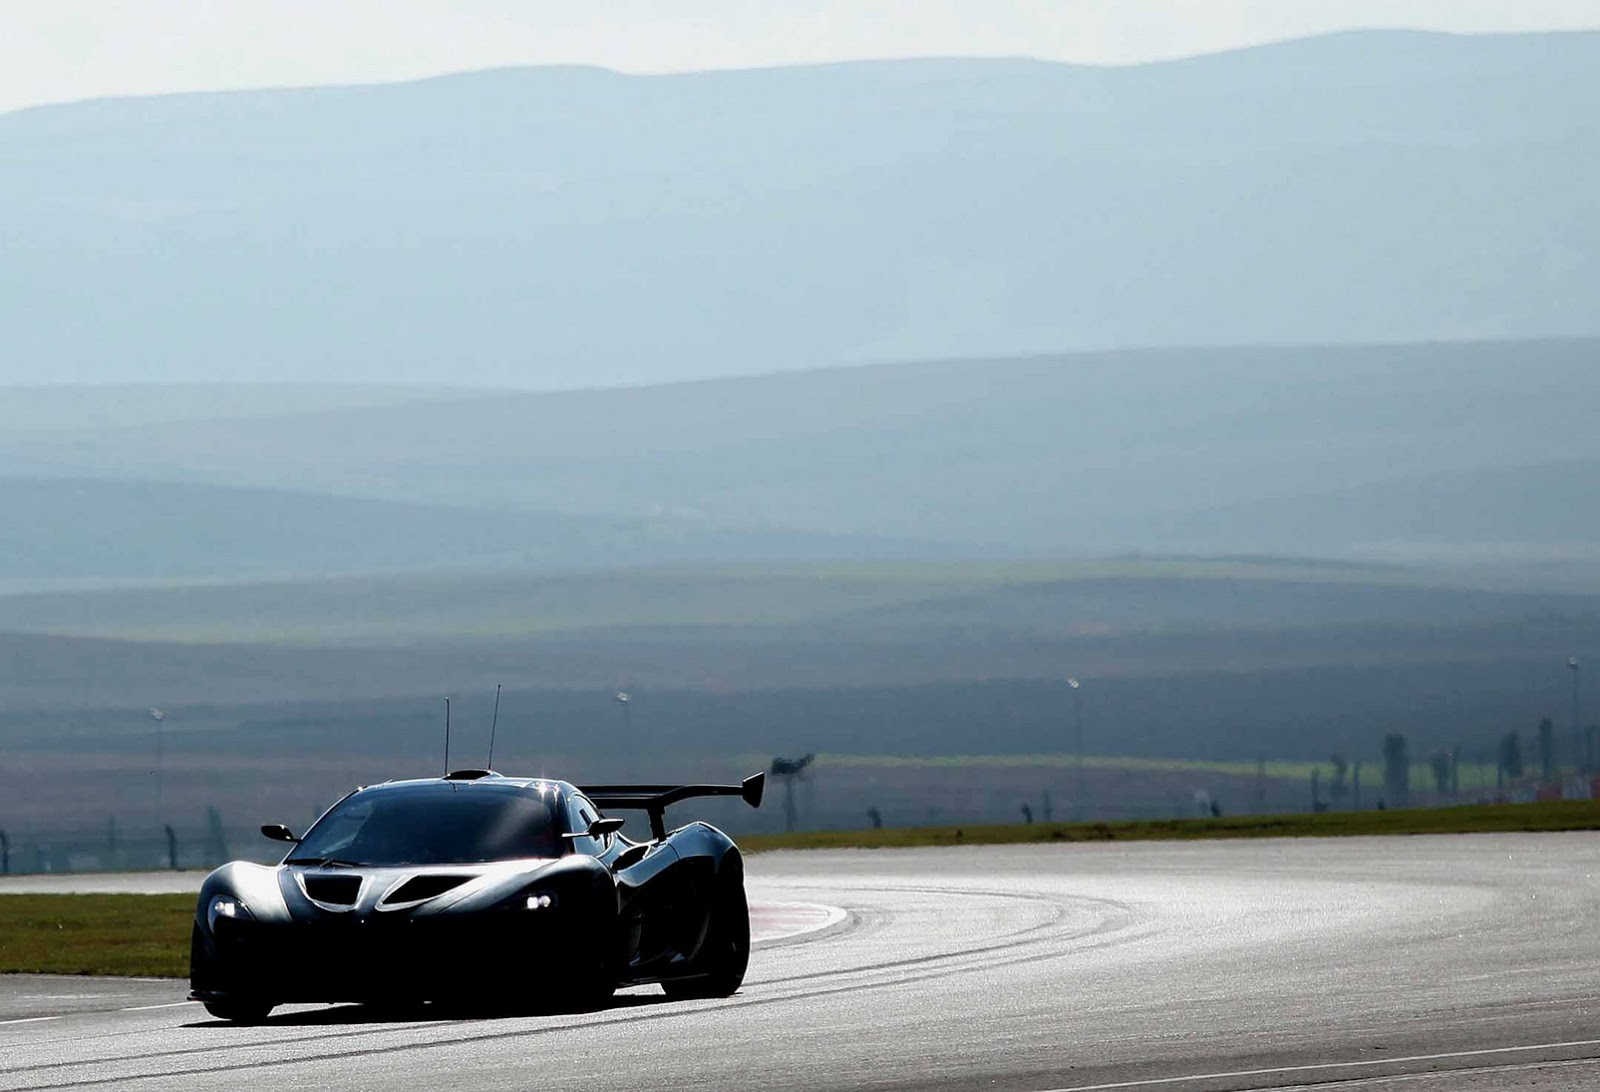 Mclaren p1 gtr extreme track weapon unveiled pictures - Photo Gallery